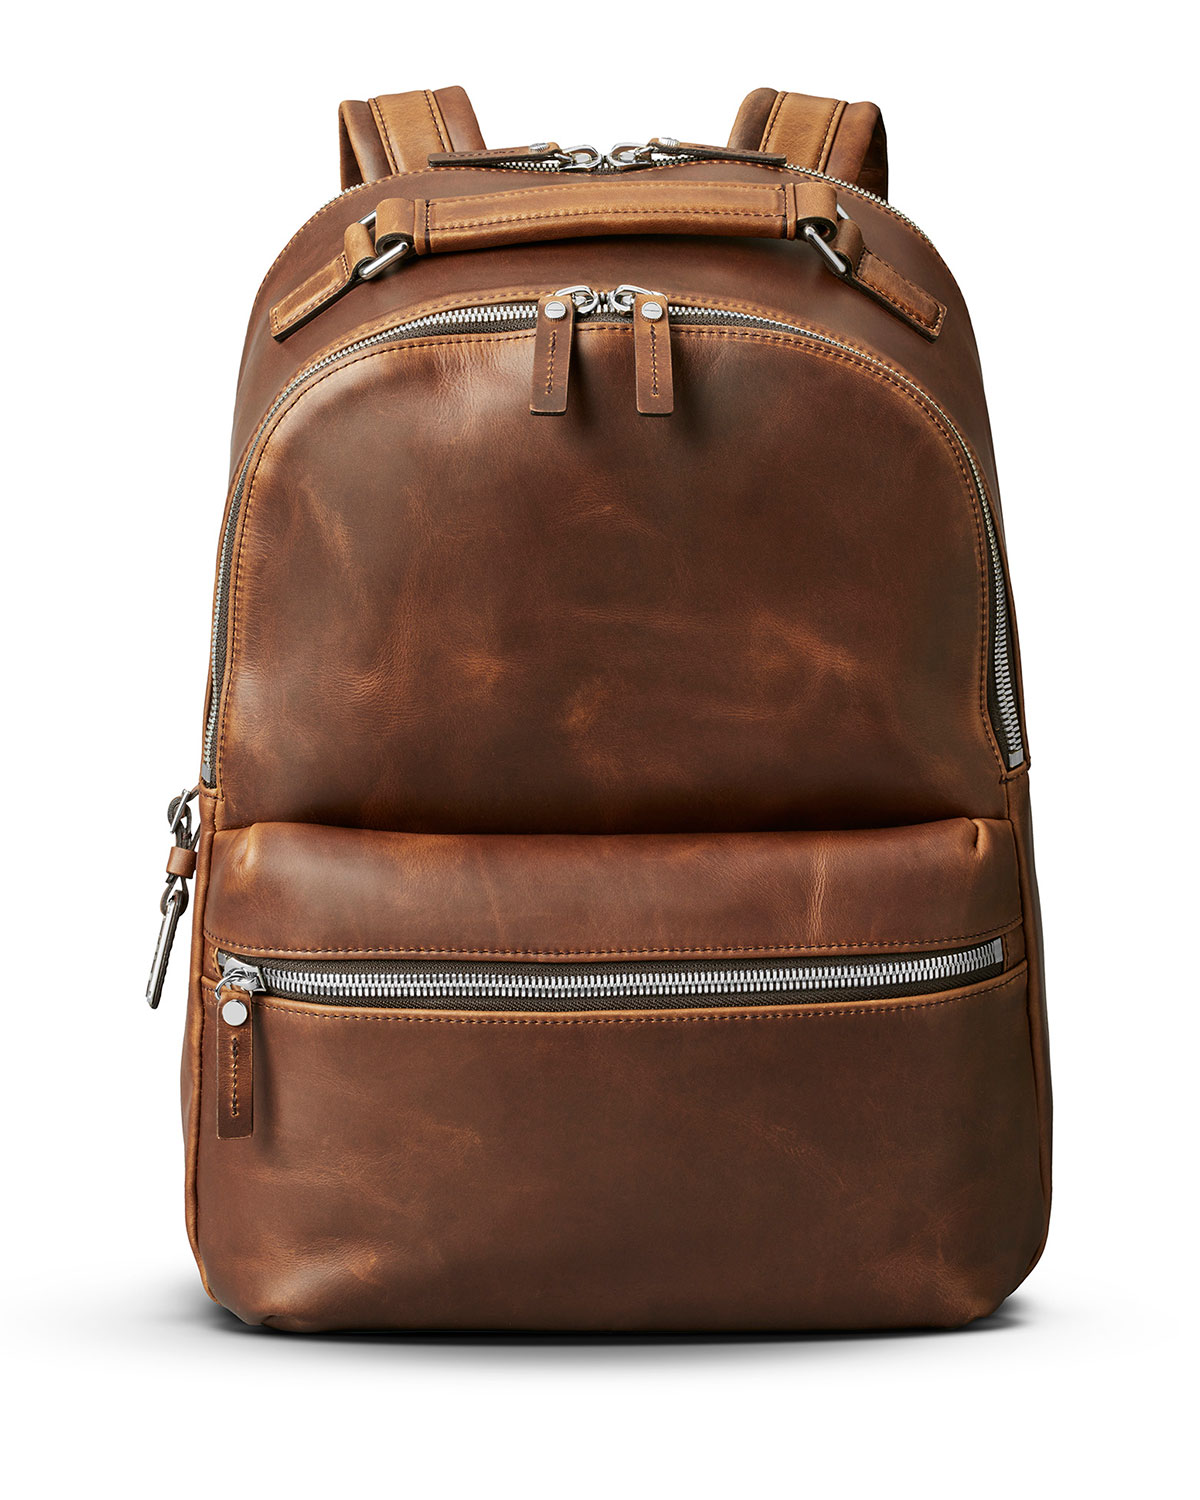 Brown Top Handle Leather Backpack | Neiman Marcus